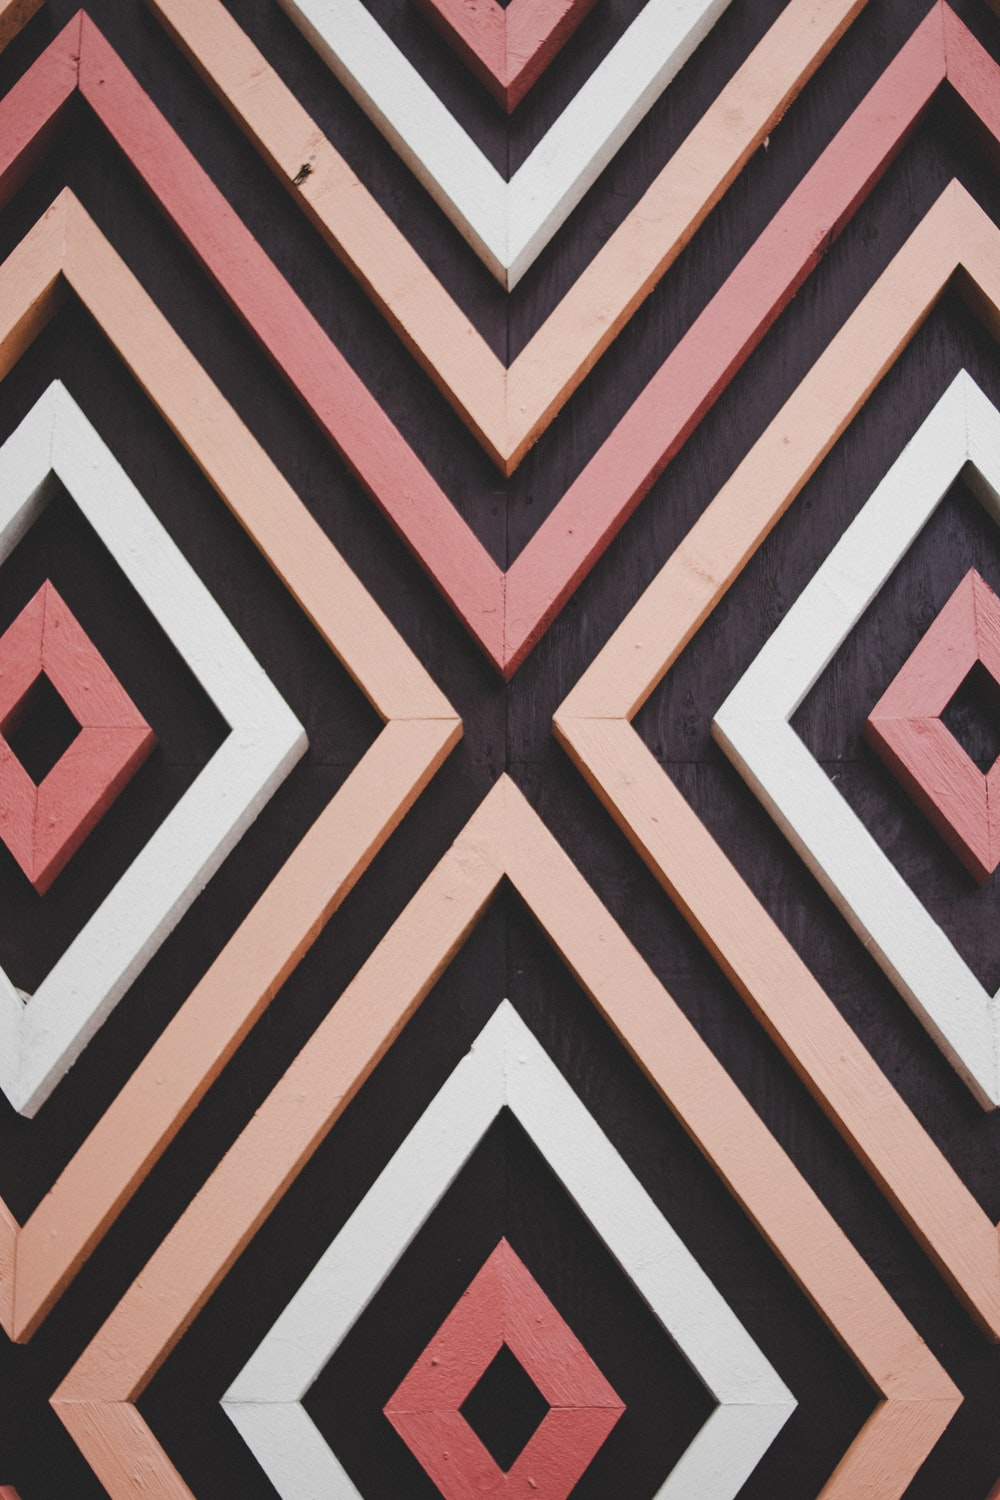 pink, black, and white wall